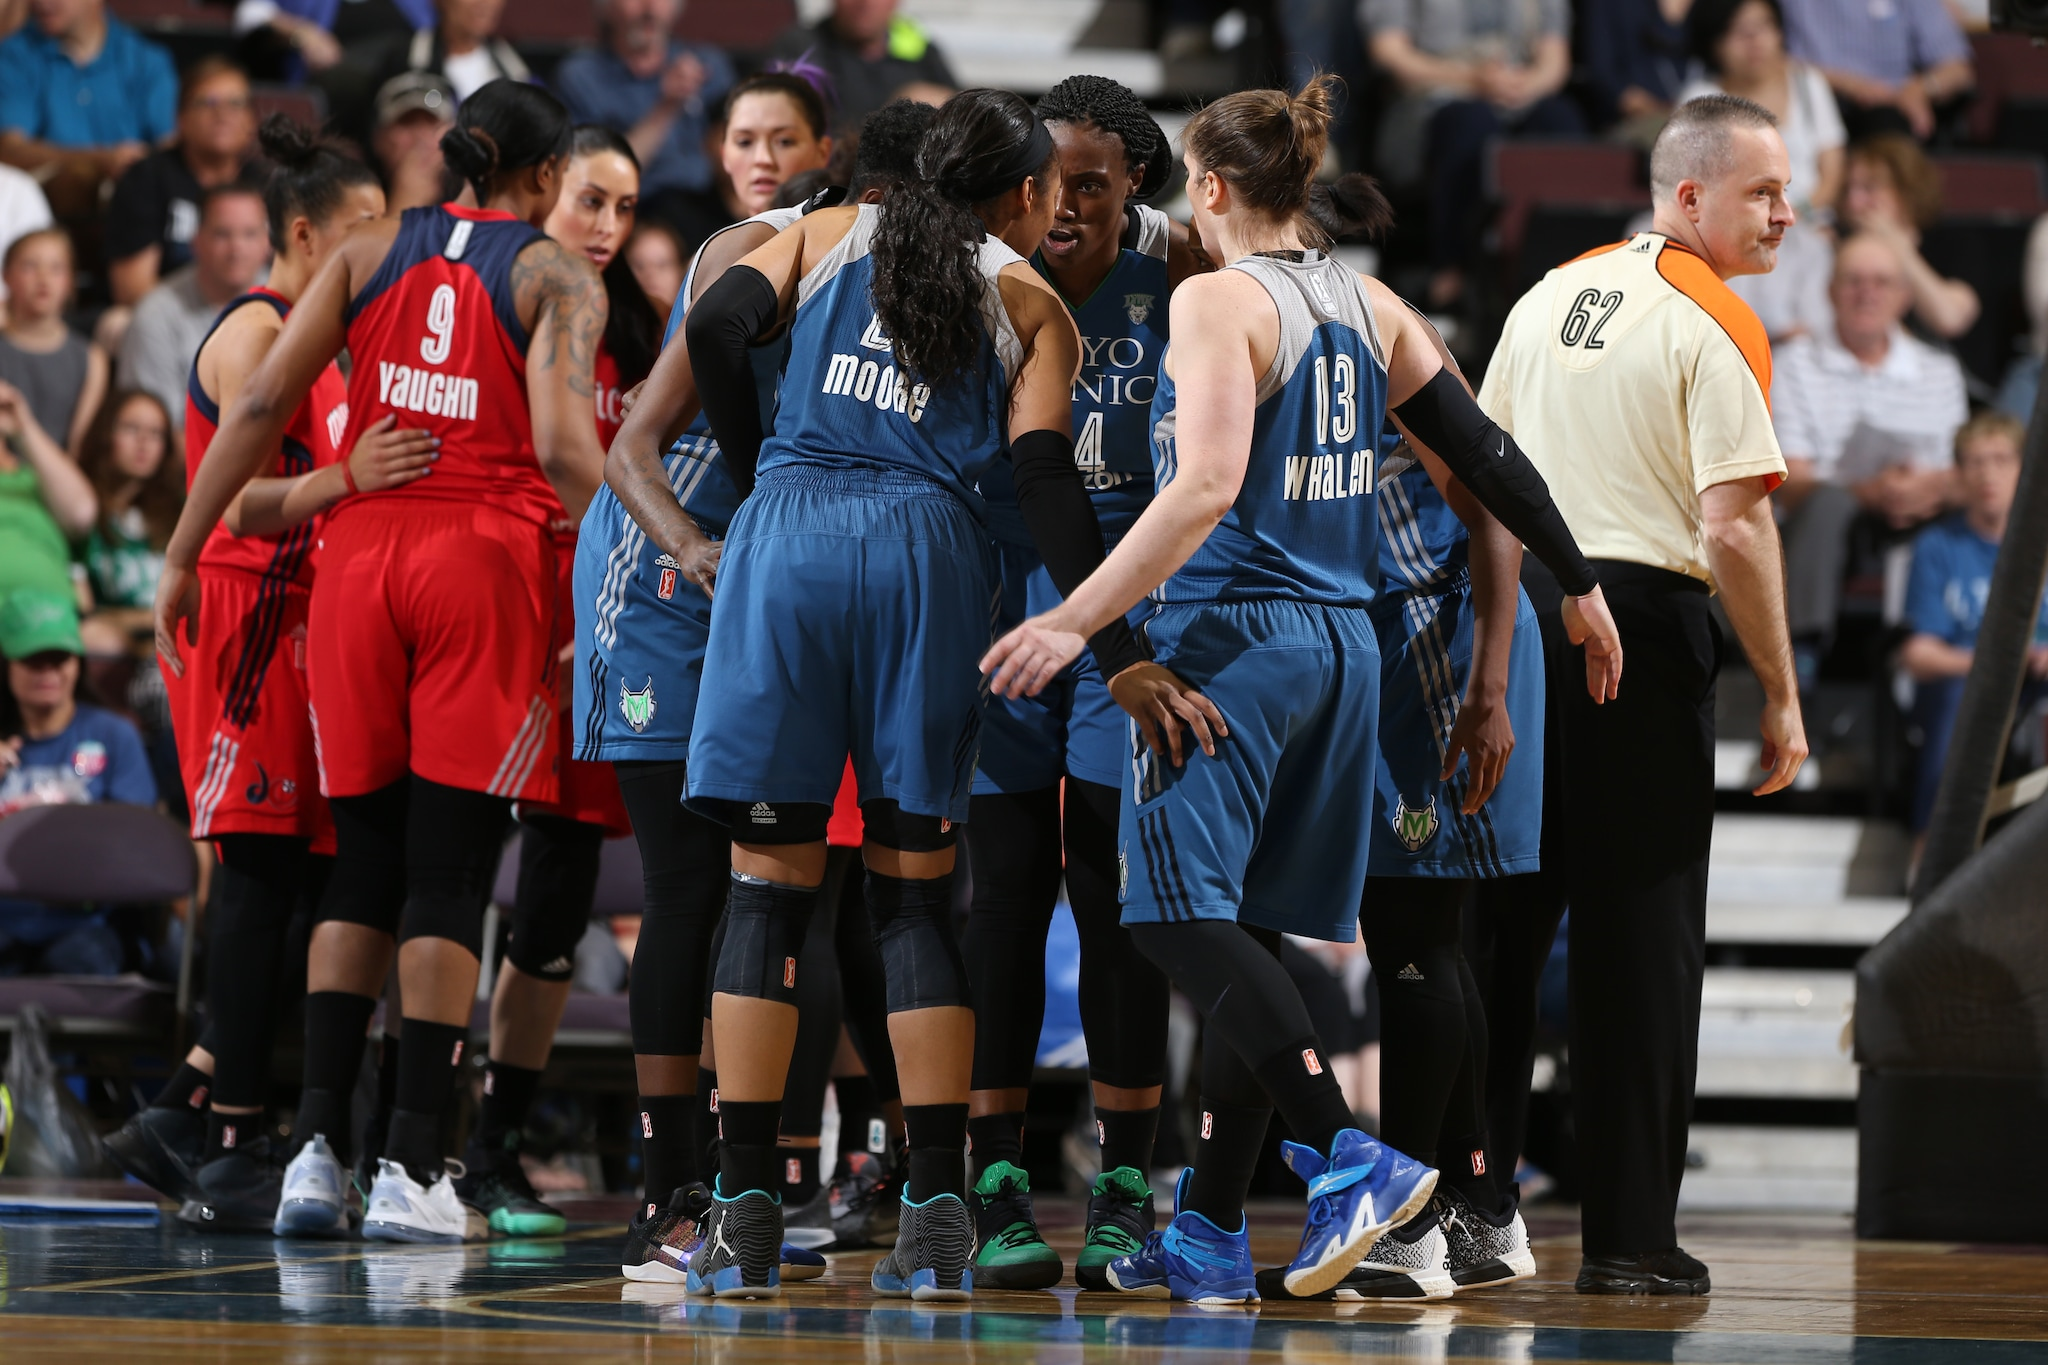 ROCHESTER, MN - MAY 8: The Minnesota Lynx against the Washington Mystics during the preseason game on May 8, 2016 at the Mayo Civic Center in Rochester, Minnesota. NOTE TO USER: User expressly acknowledges and agrees that, by downloading and or using this Photograph, user is consenting to the terms and conditions of the Getty Images License Agreement. Mandatory Copyright Notice: Copyright 2016 NBAE (Photo by David Sherman/NBAE via Getty Images)